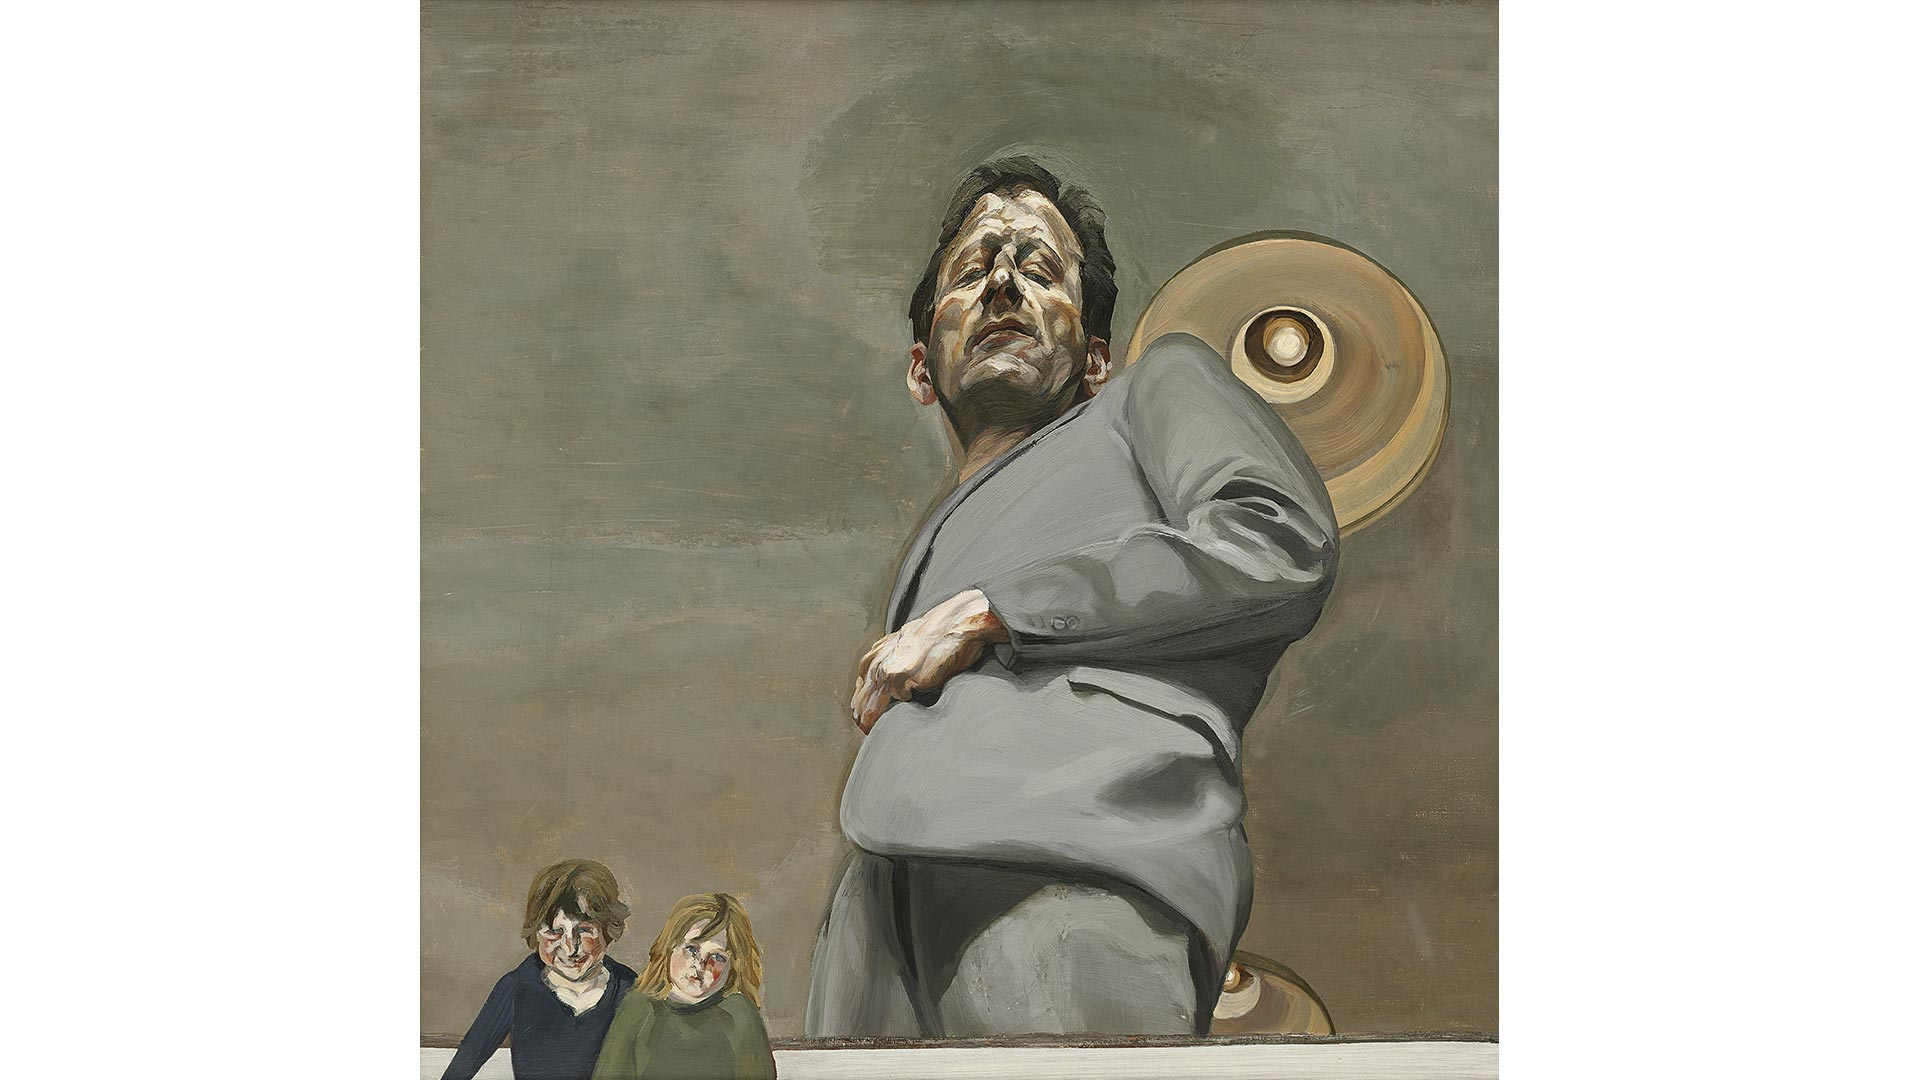 A self-portrait of Lucian Freud, looking up at the artist, with two small children in the bottom left.